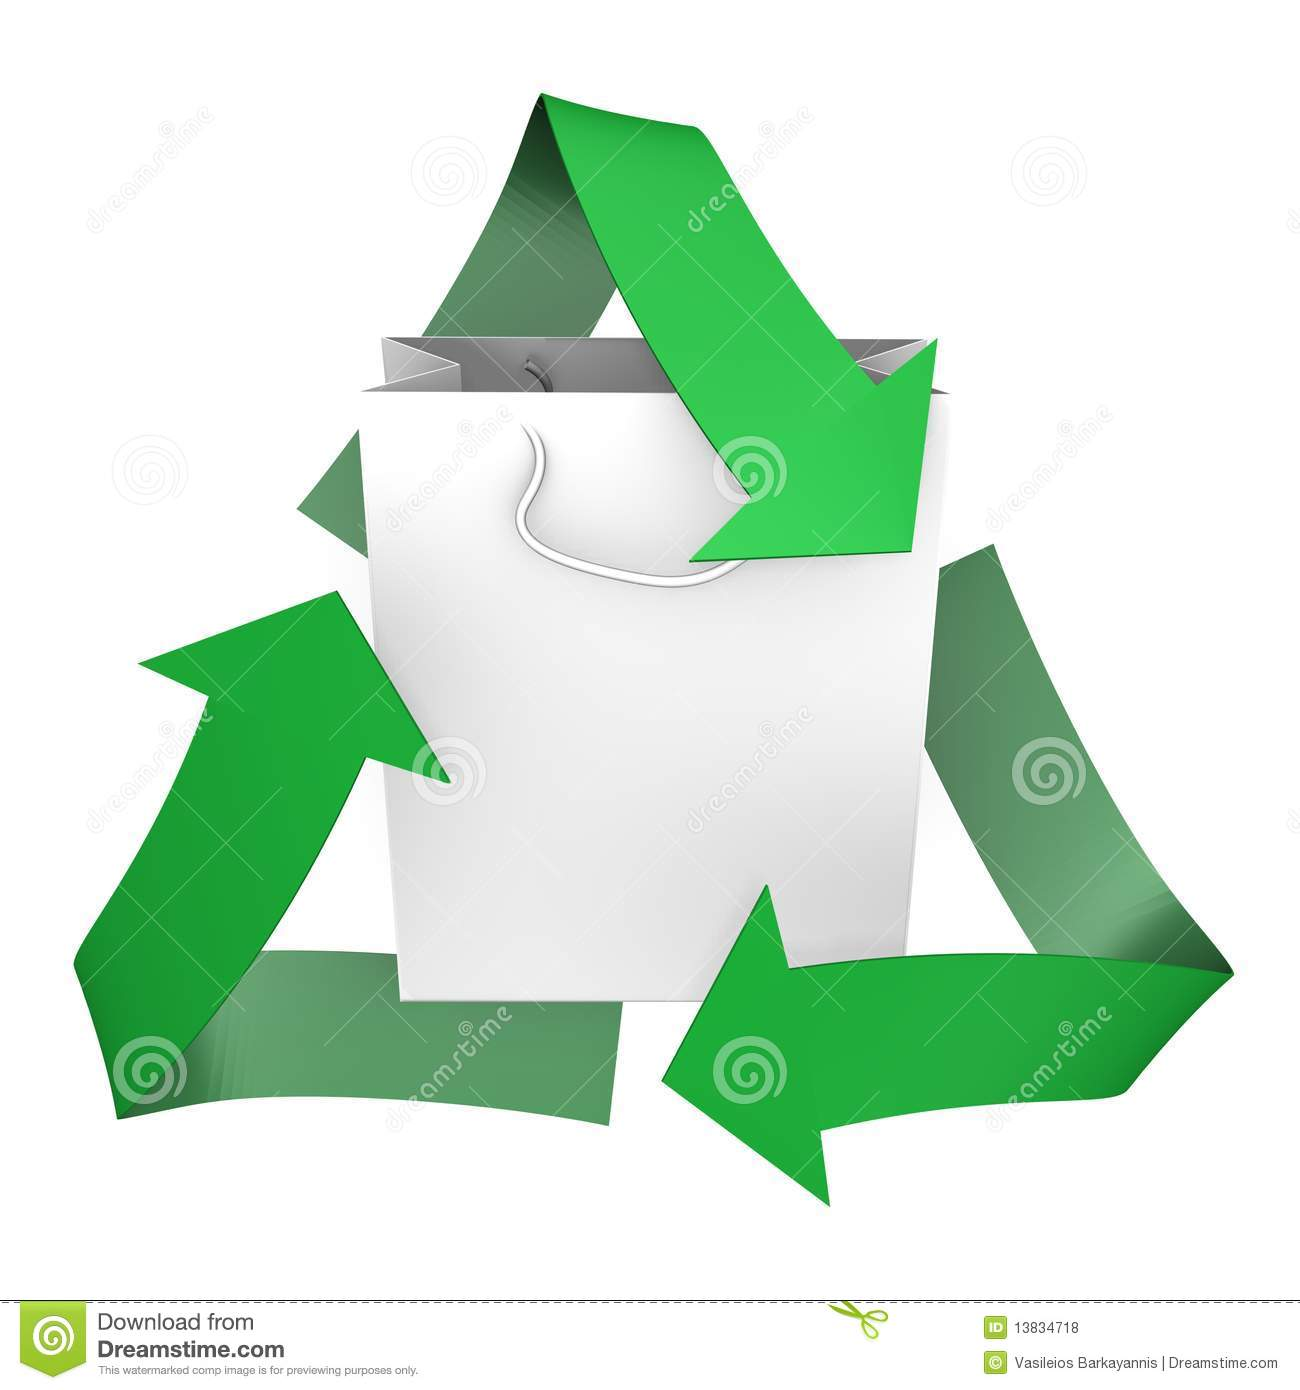 A paper bag with recycle symbol 3d image stock illustration a paper bag with recycle symbol 3d image buycottarizona